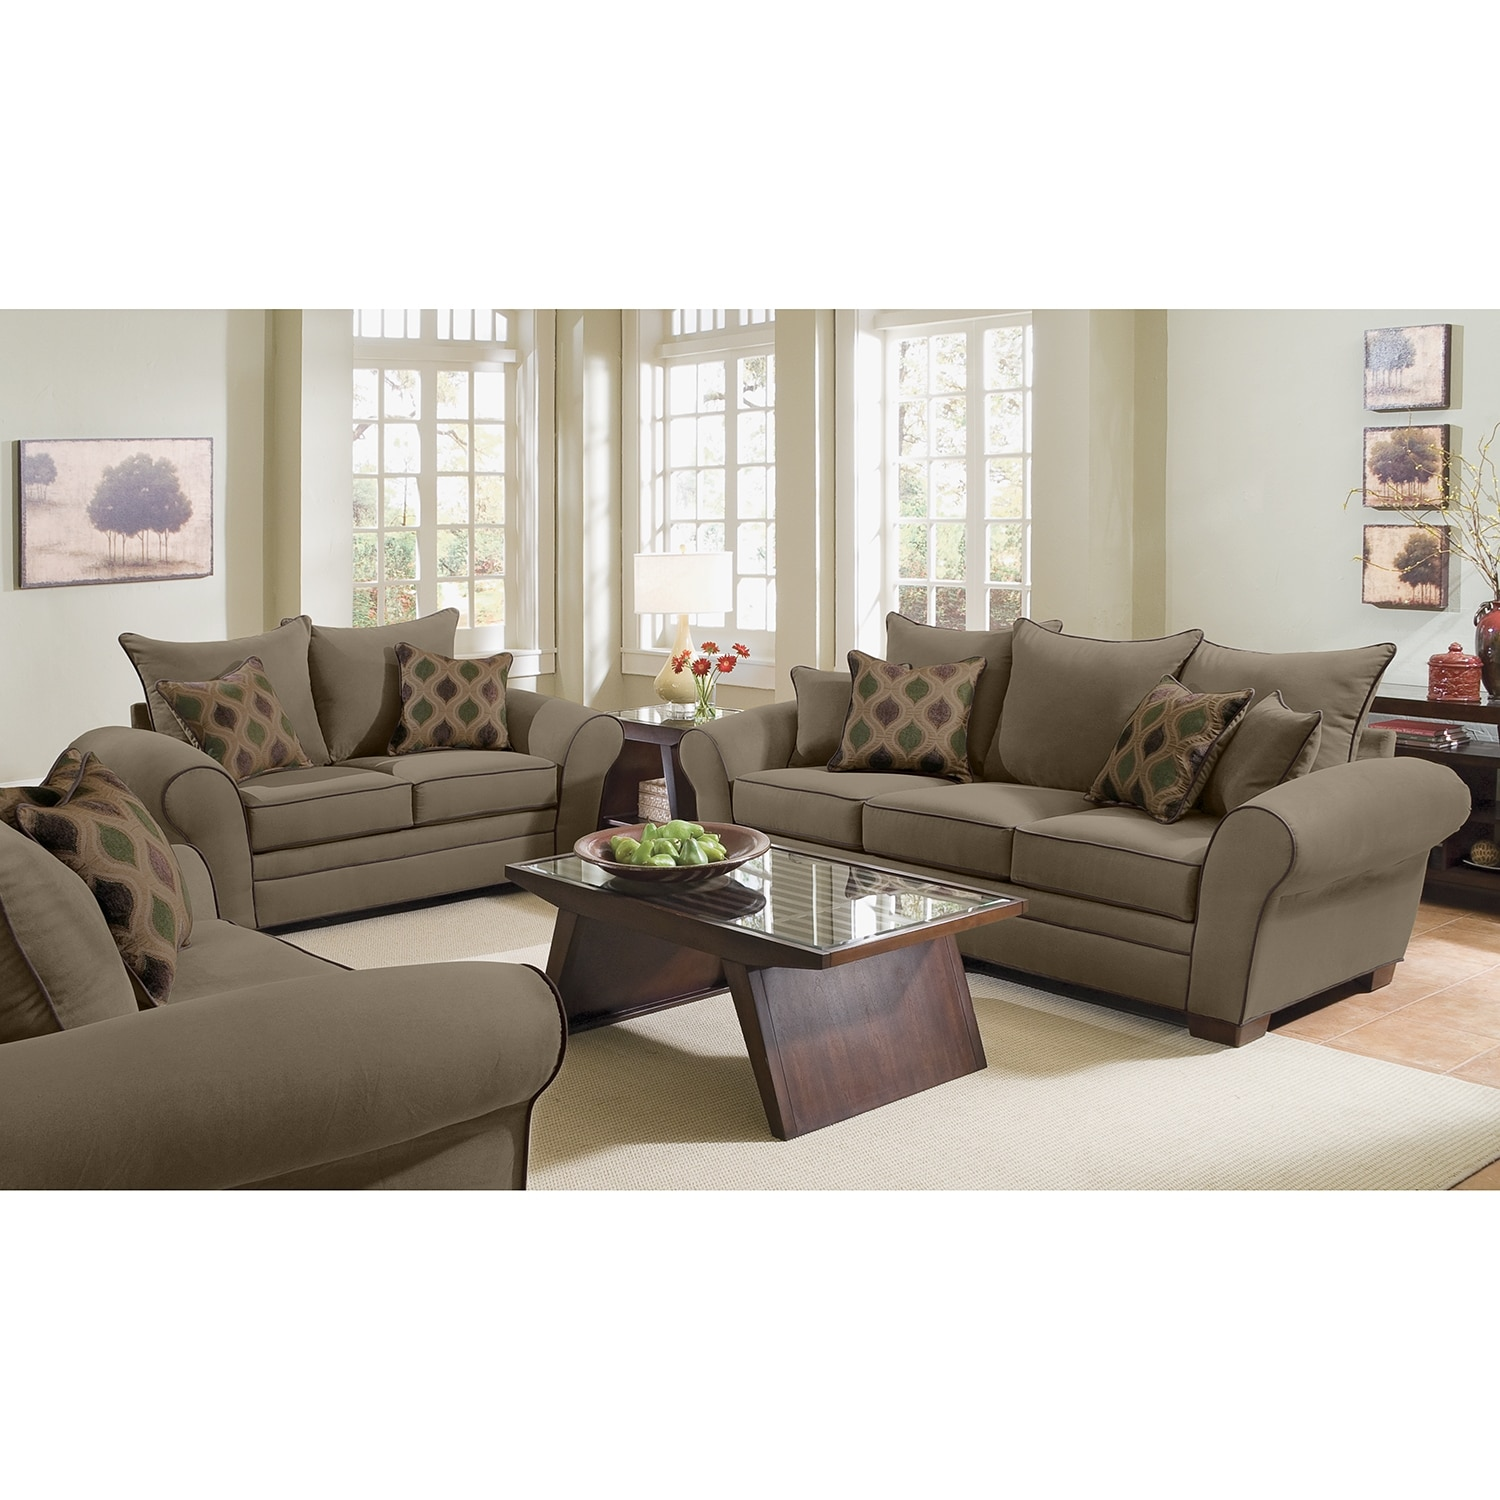 Rendezvous sofa and loveseat set olive value city for Drawing room furniture set